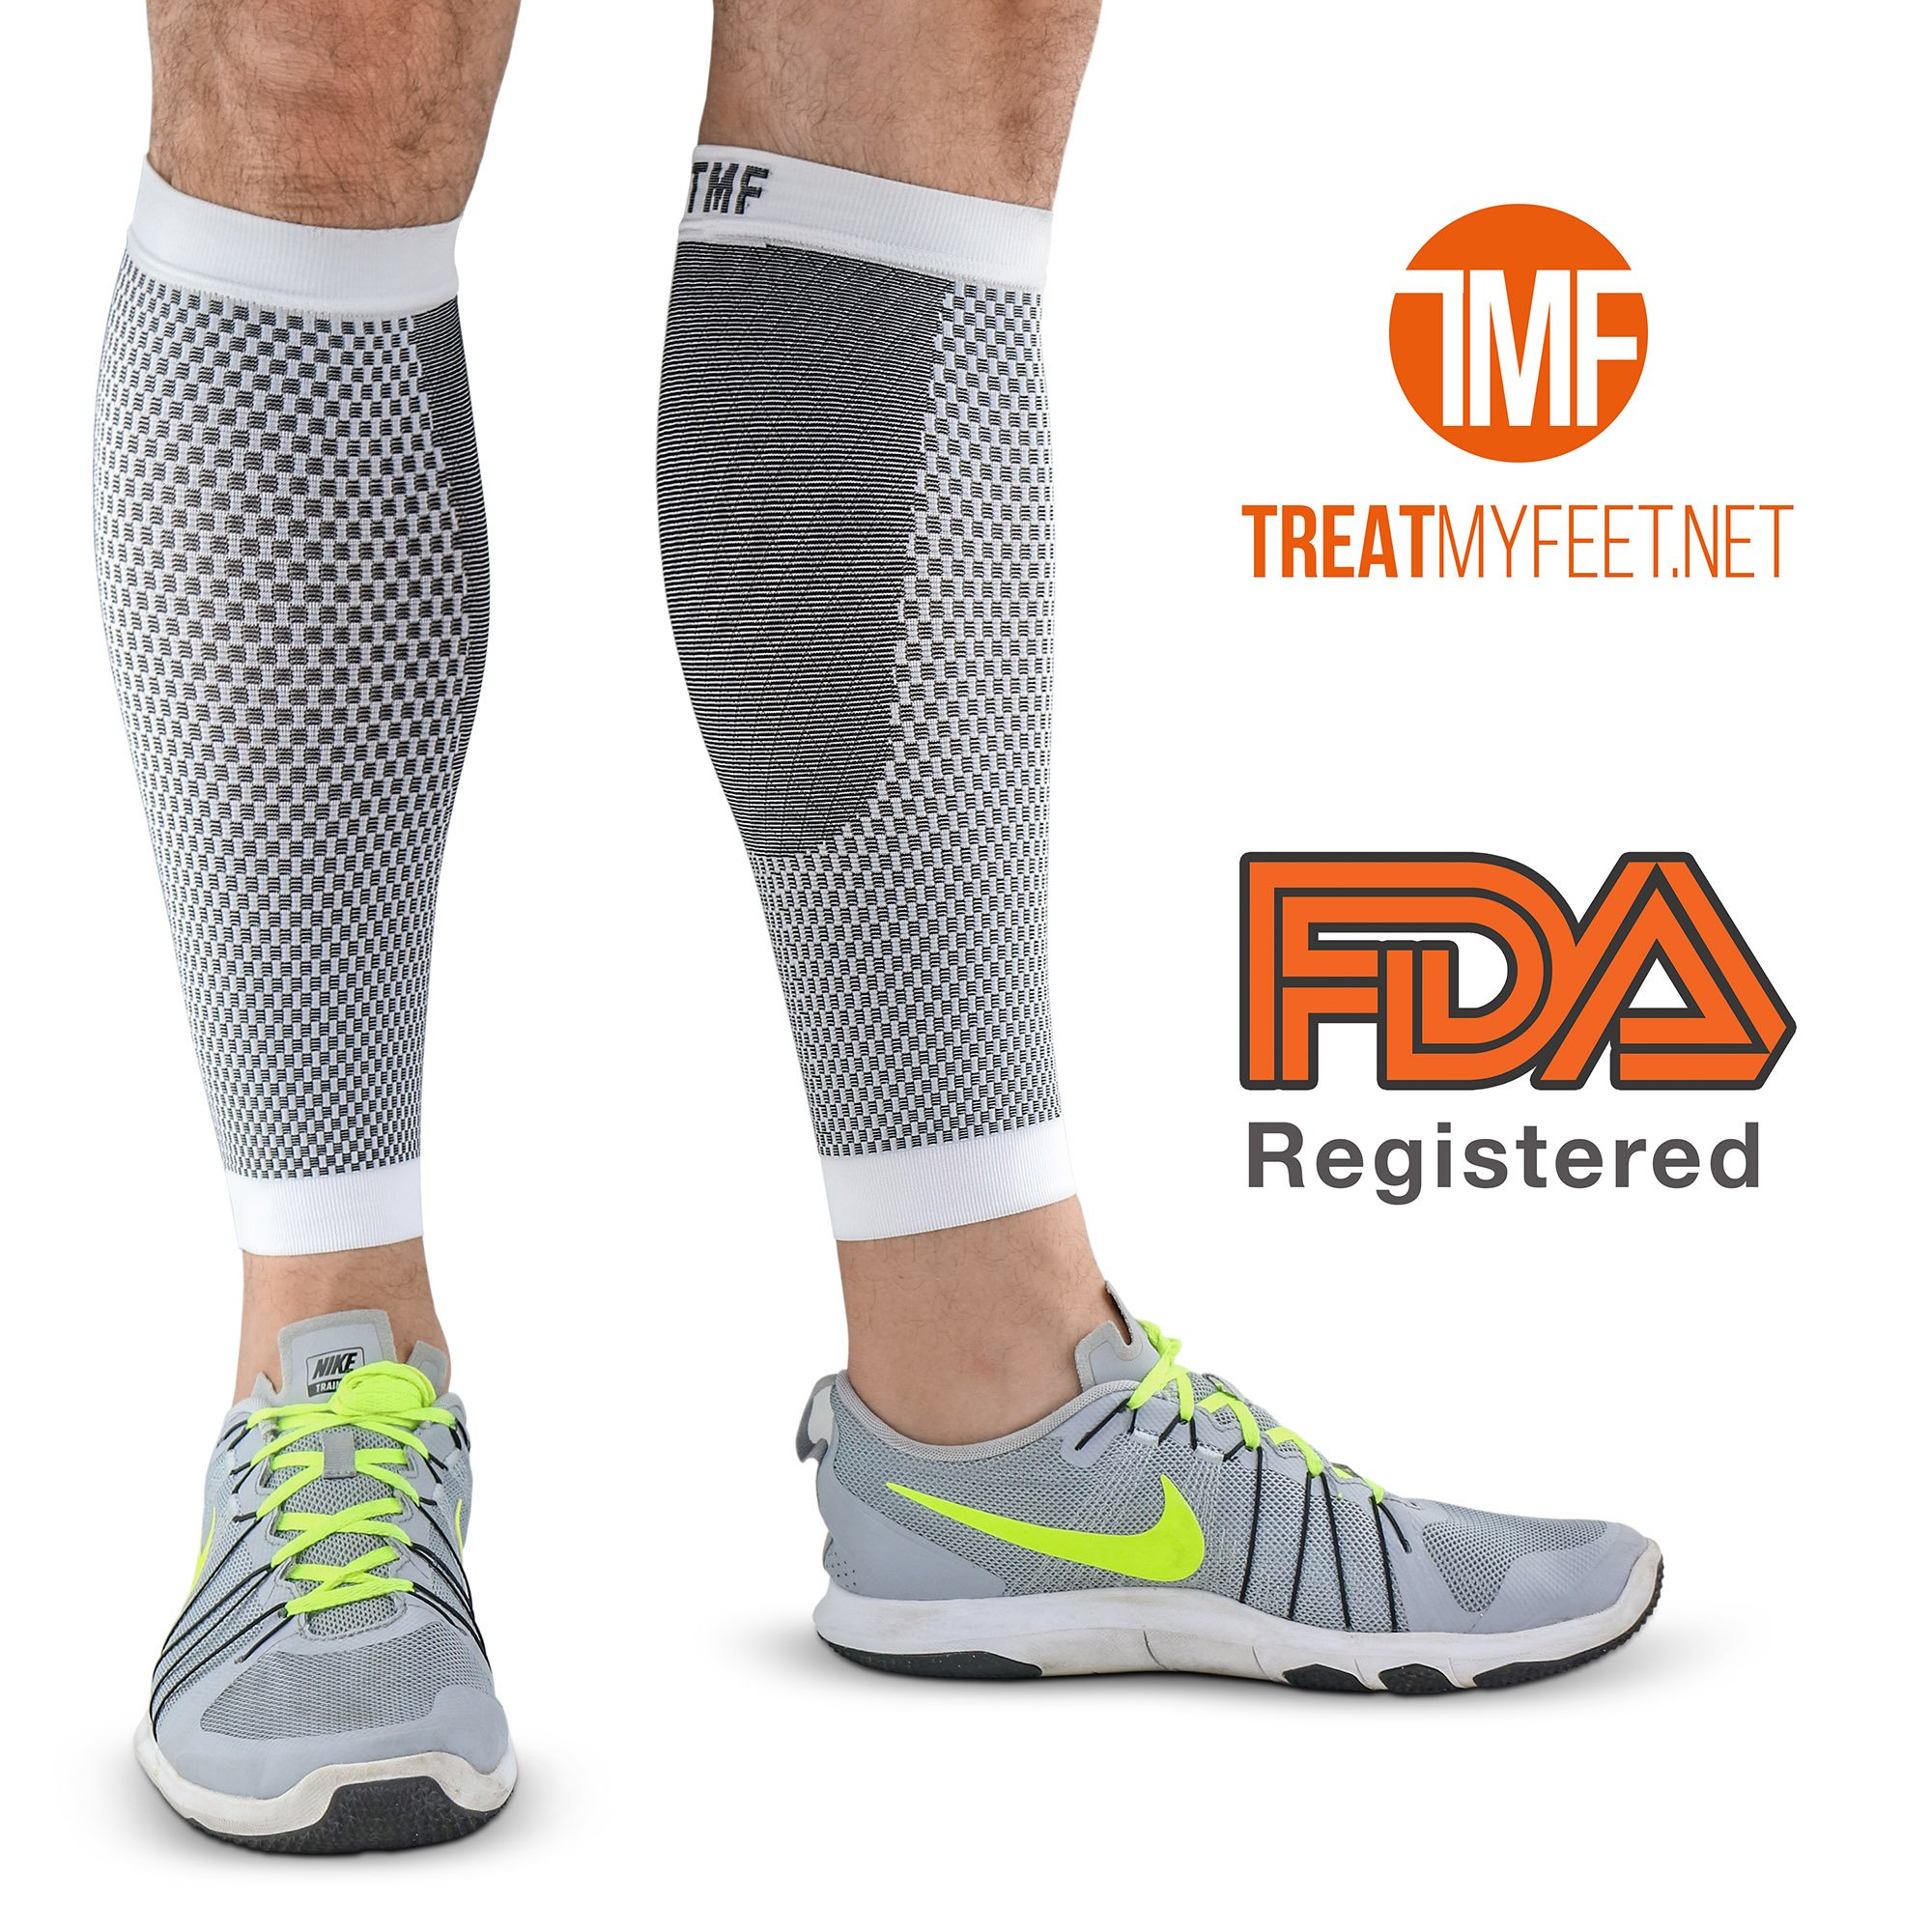 Leg & Calf Compression Sleeve (1 Pair) Shin Splint & Calf Pain Relief, Comfortable Calf Sleeves helps Improve Circulation for Runners, Nurses & Travelers. Leg Support Footless Socks